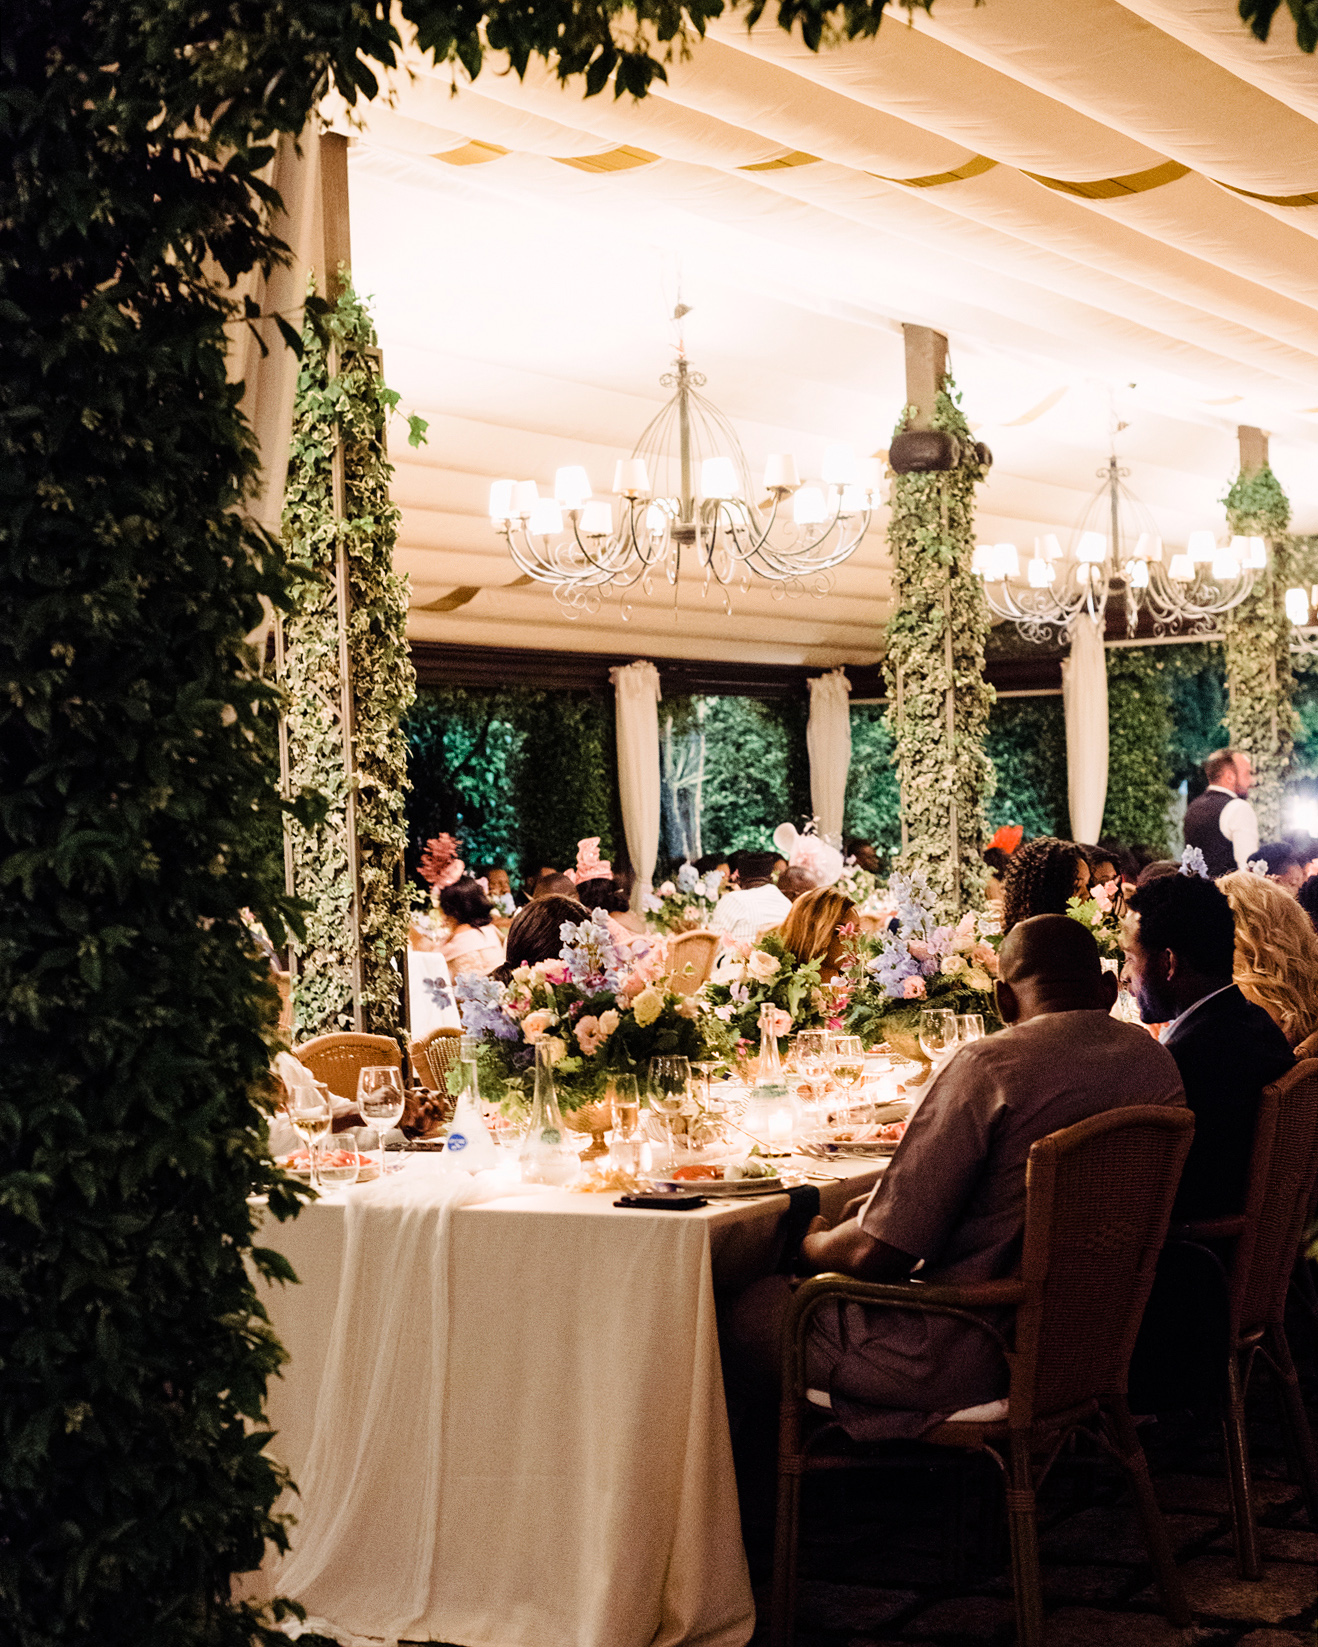 onome efe wedding reception tables and guests